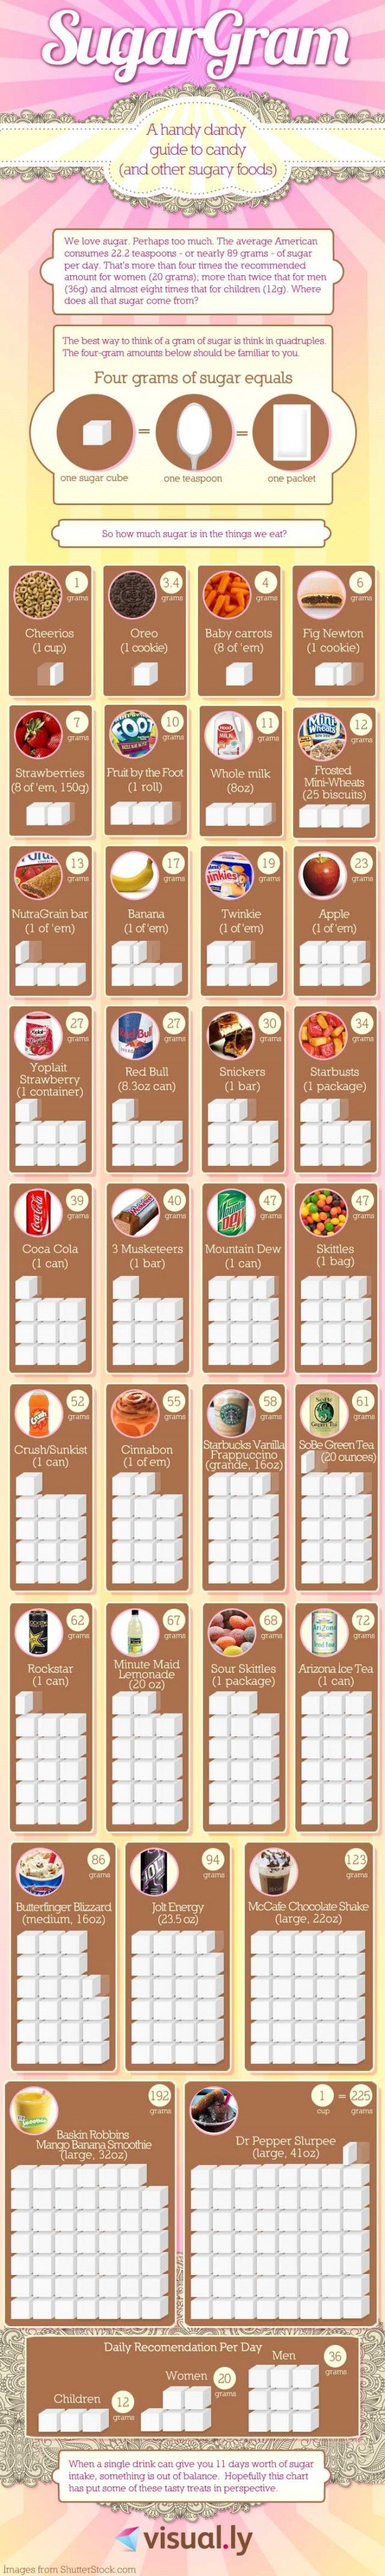 Your Guide to Sugar